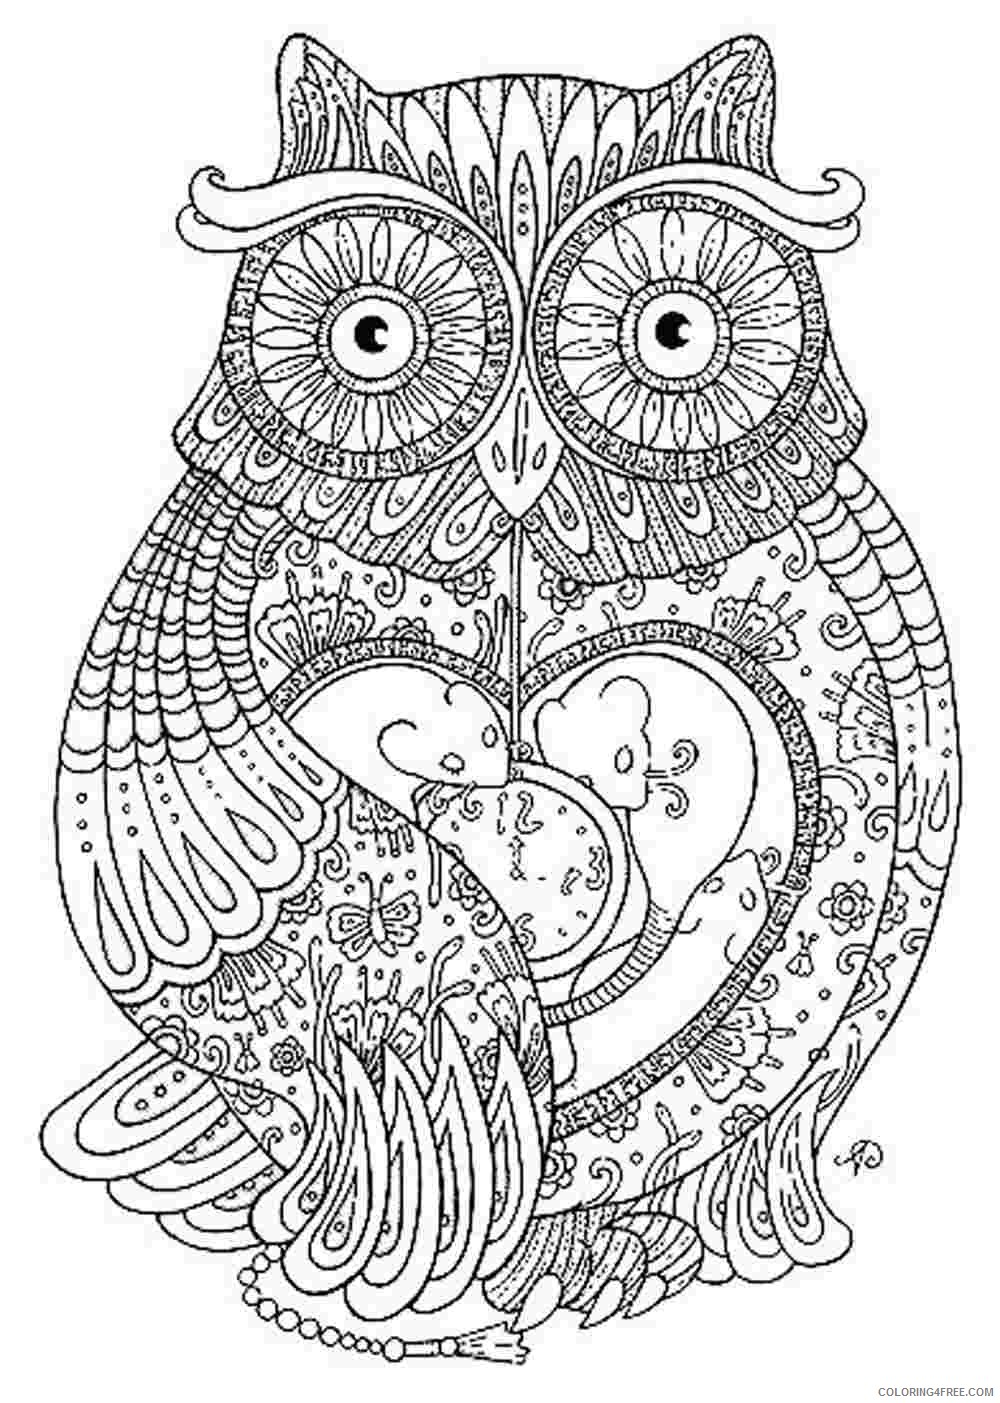 adult coloring pages owl printable Coloring4free